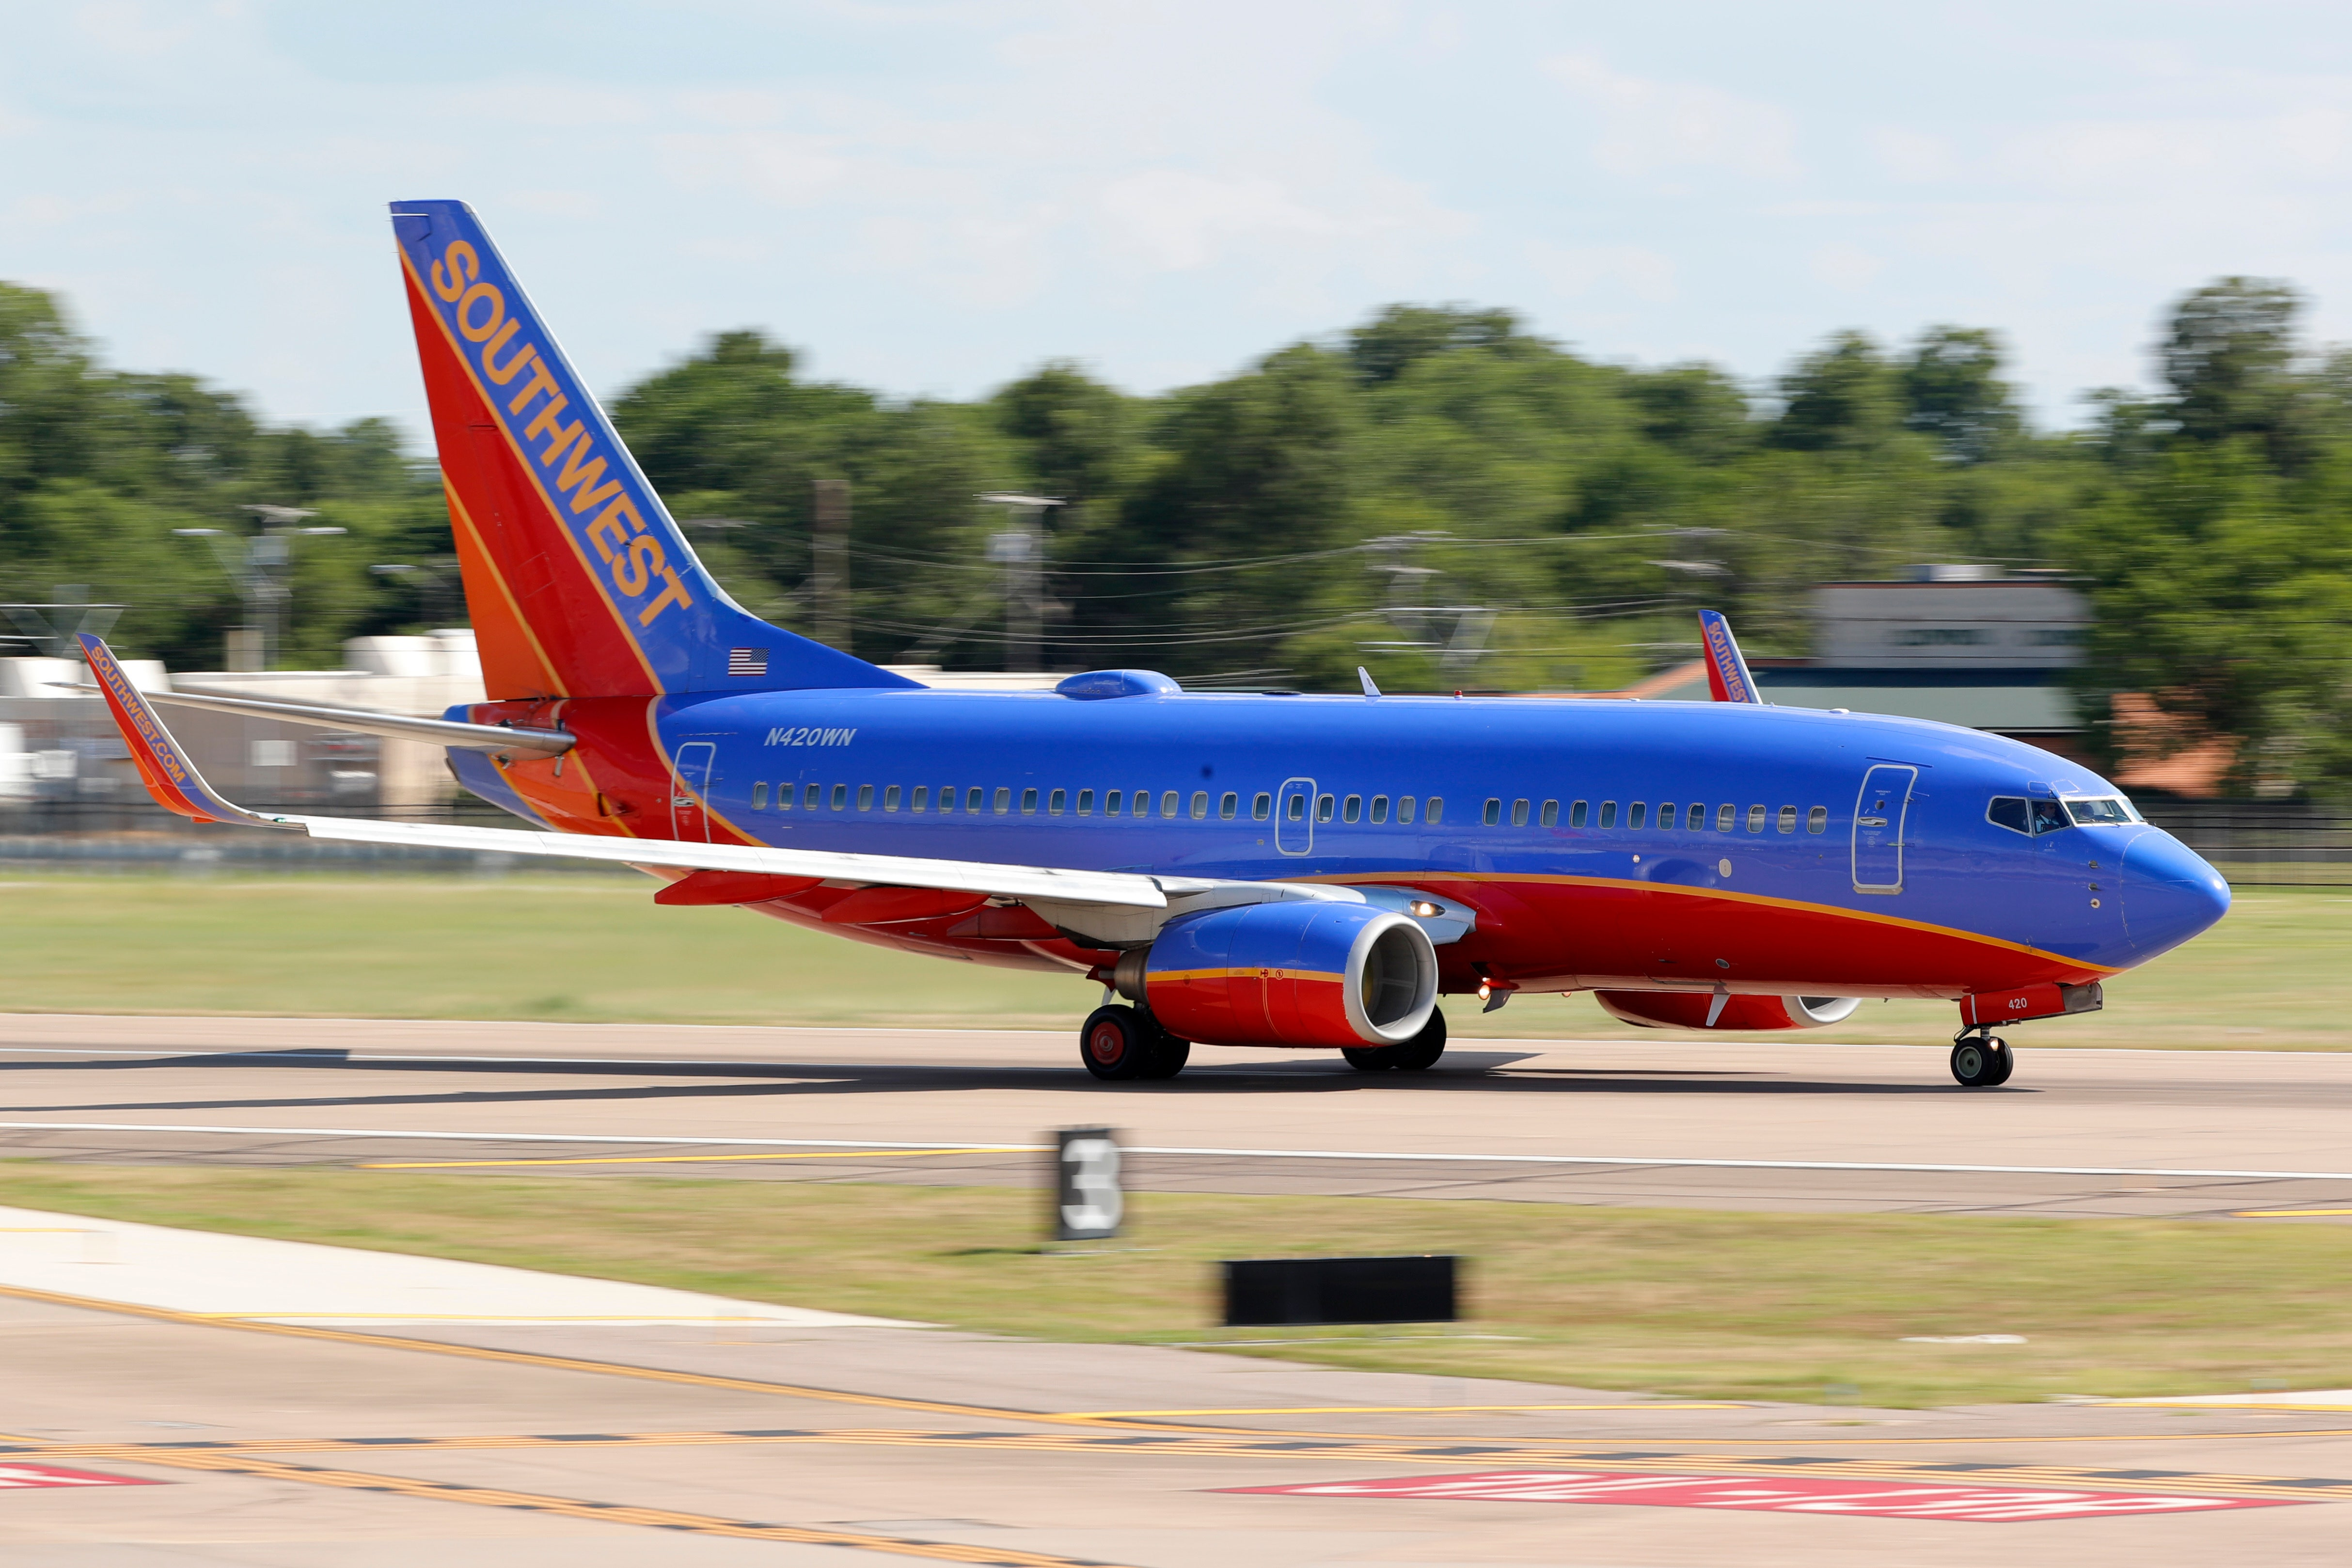 Southwest CEO announces pay cuts to avoid layoffs furloughs through 2021 – Fox Business